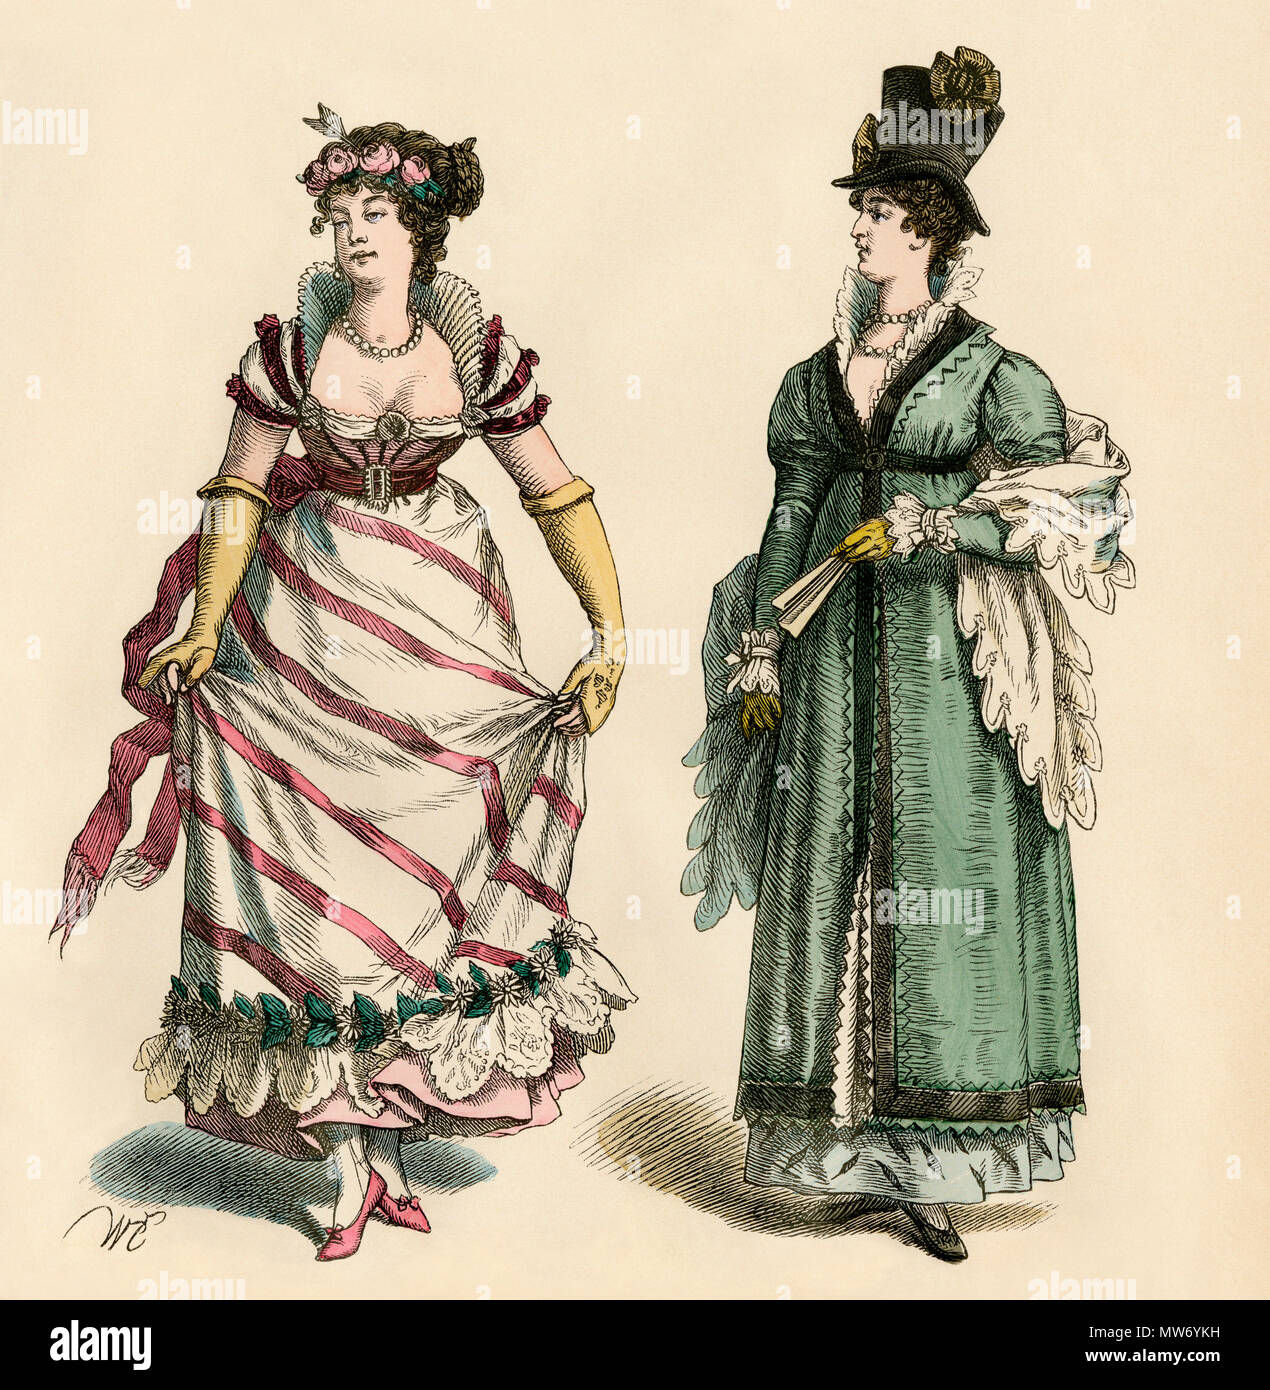 Lady in a ballgown, 1805, and a lady in a top hat in street clothes. Hand-colored print - Stock Image